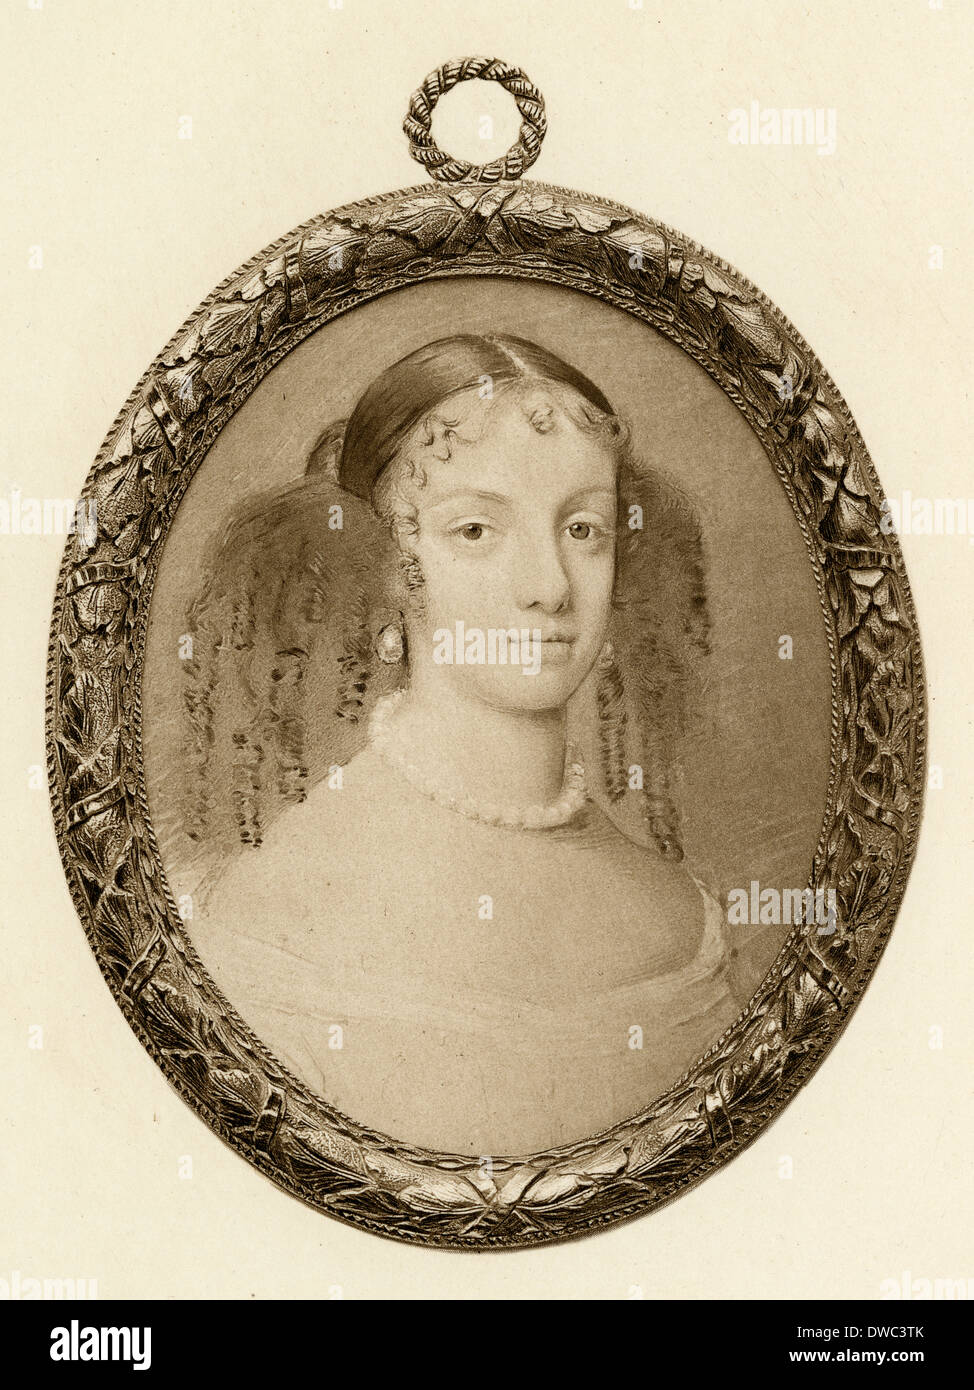 Antique engraving, Catherine of Braganza. - Stock Image